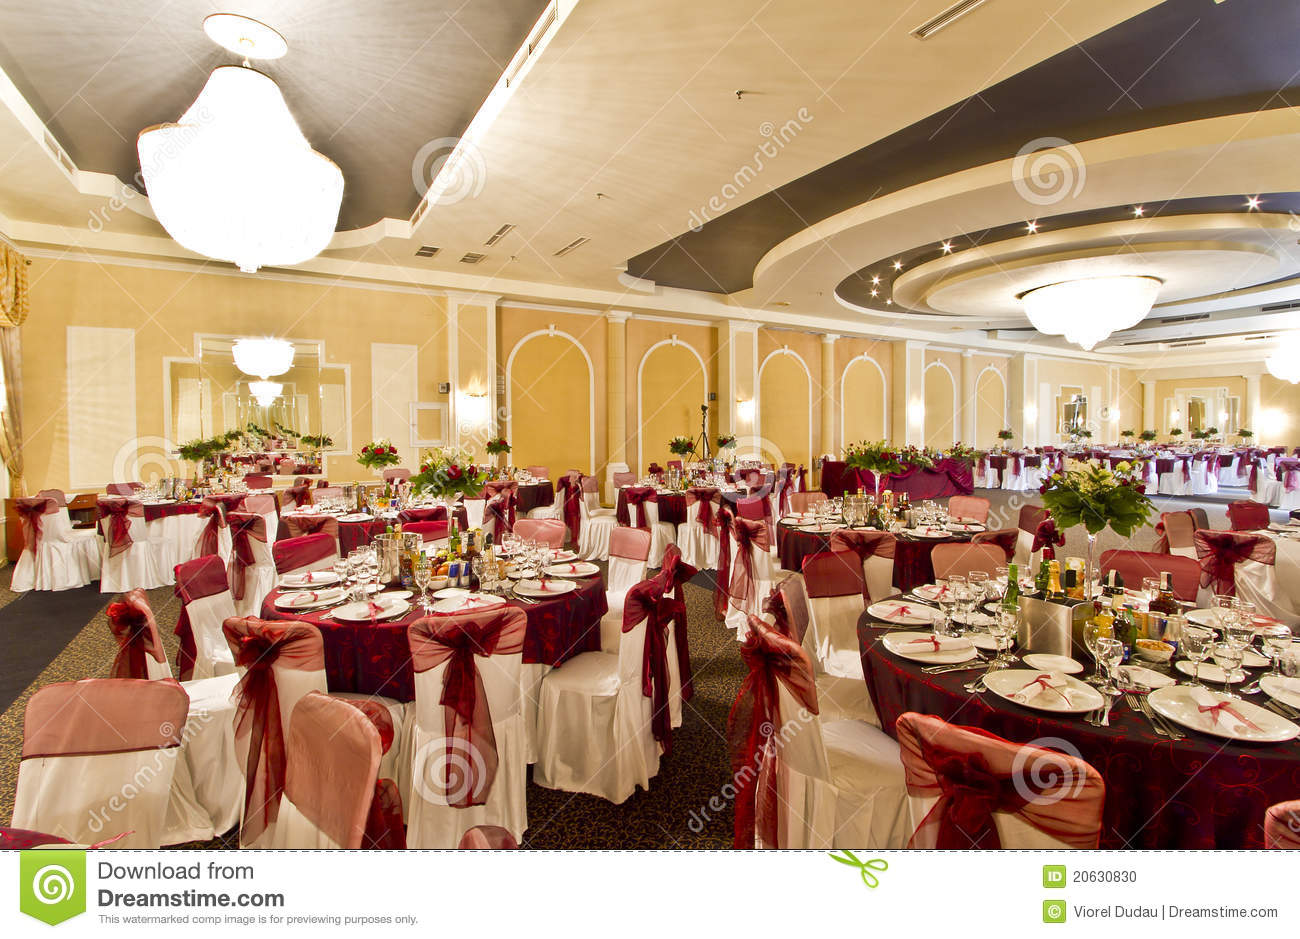 Wedding Reception Hall Stock Photo Image 20630830 : wedding reception hall 20630830 from www.dreamstime.com size 1300 x 939 jpeg 205kB